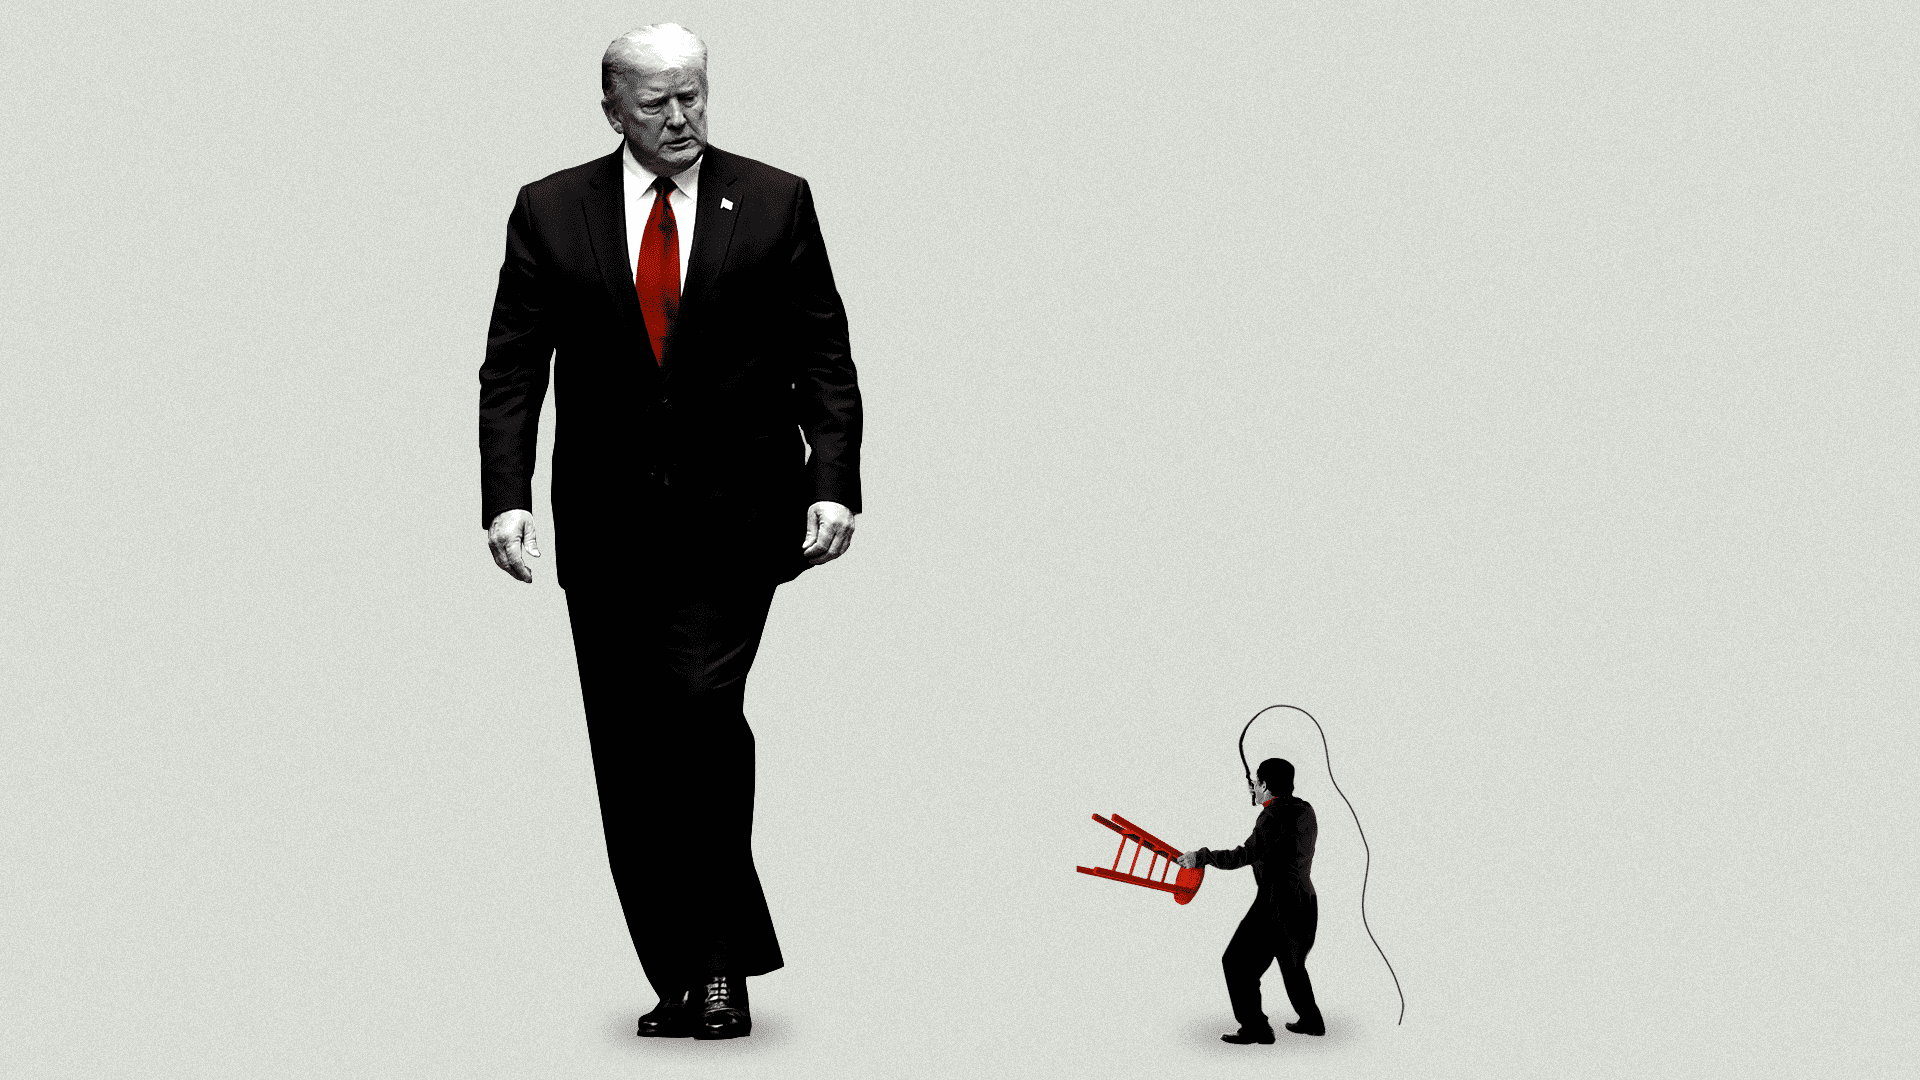 Trump standing very tall next to a shrunken depiction of a man holding a whip.